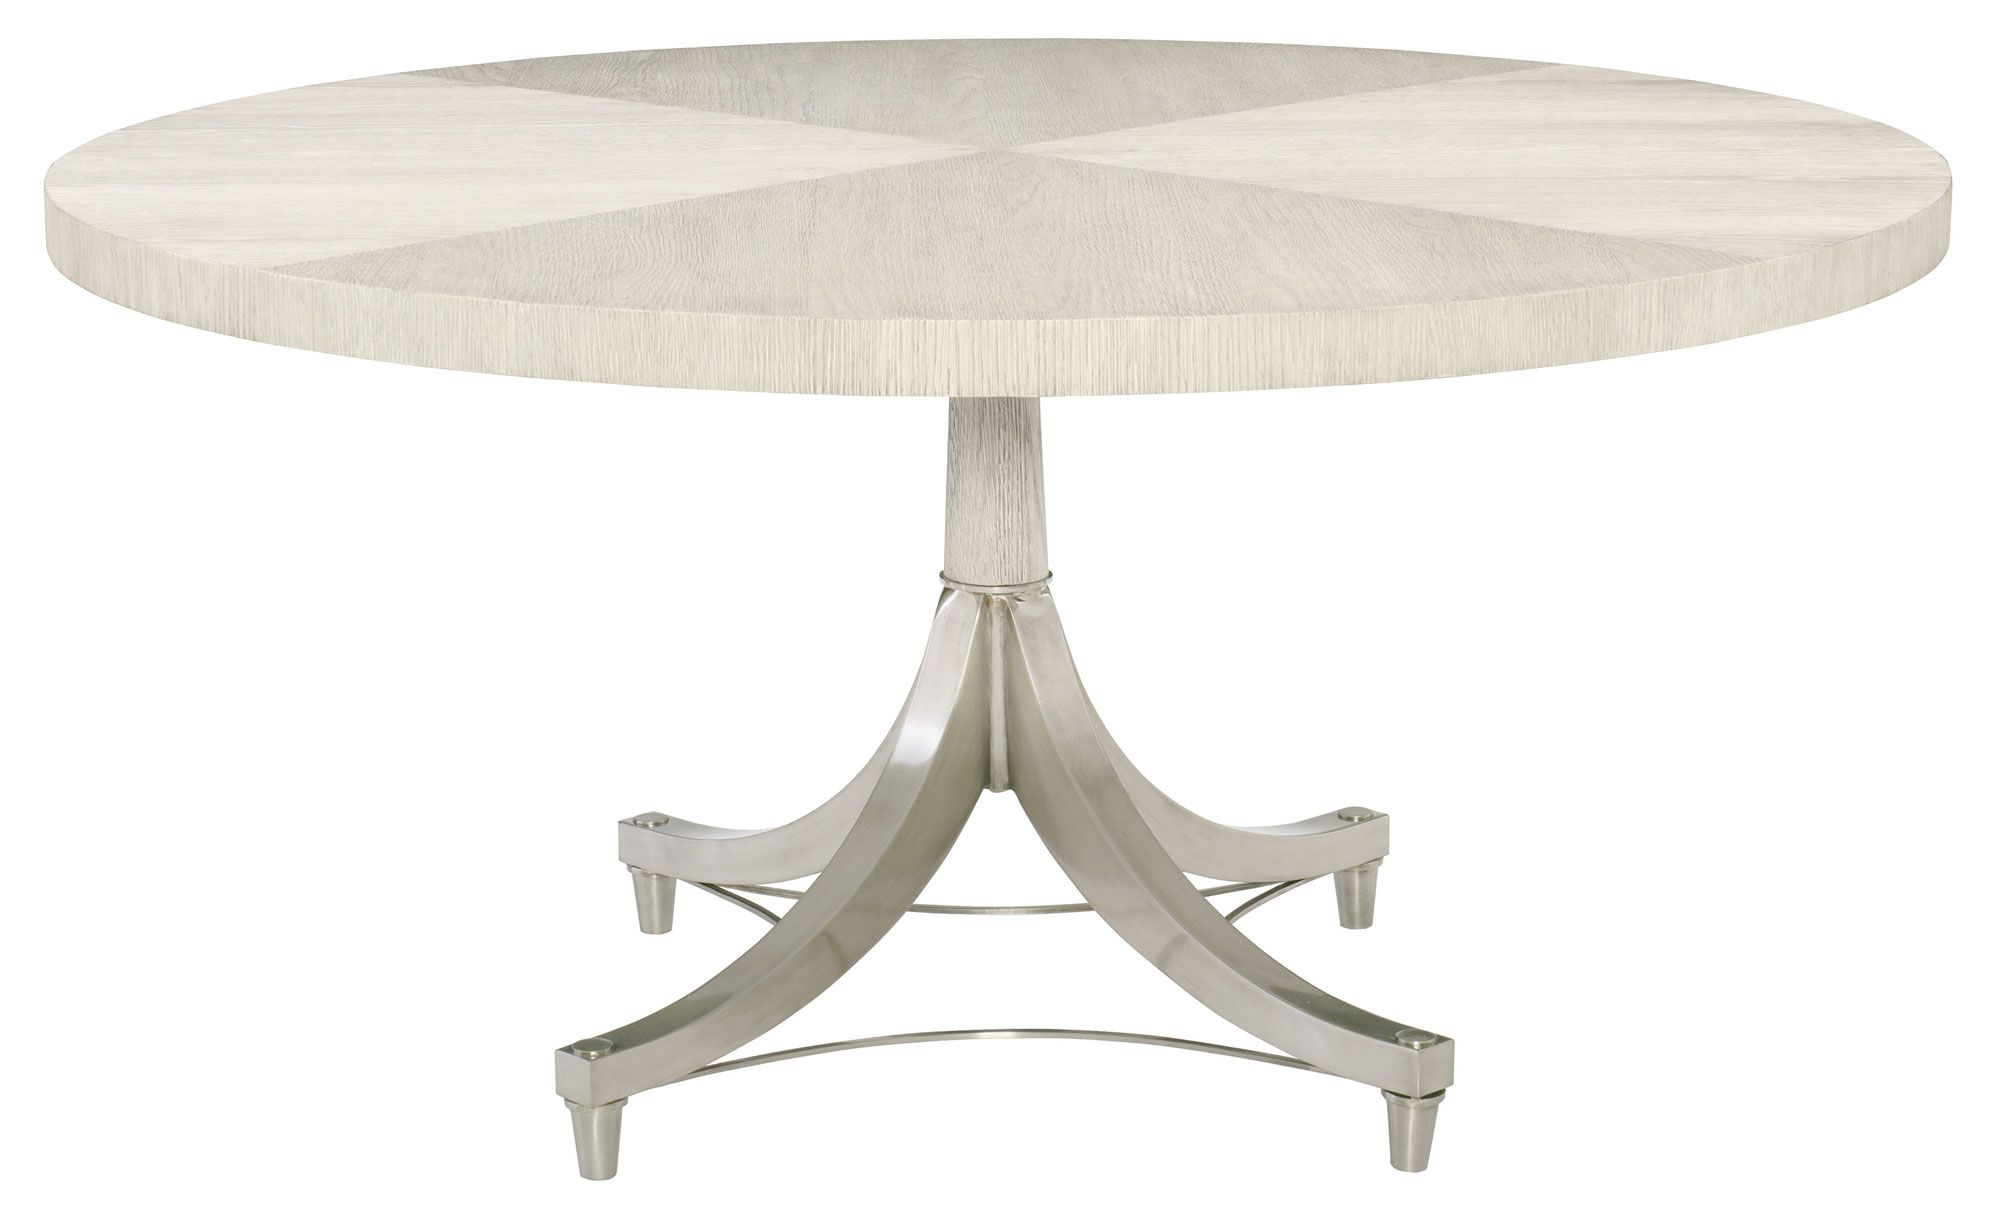 Round Dining Table Top And Base Bernhardt With Images Dining